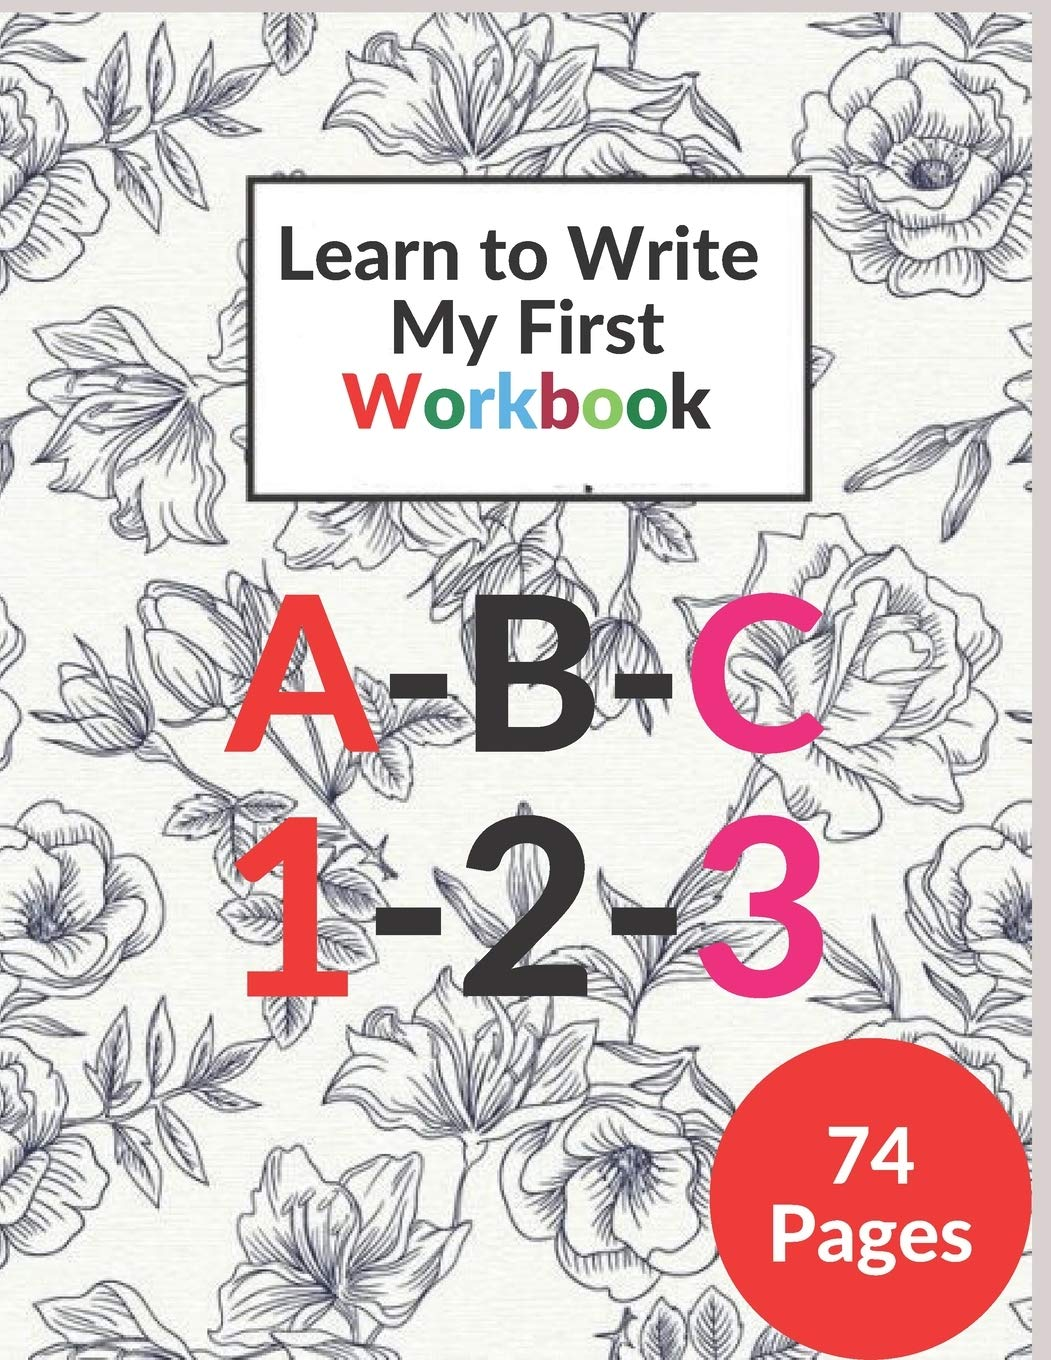 Cover image of My First Learn to Write Workbook by Coloring Kid's